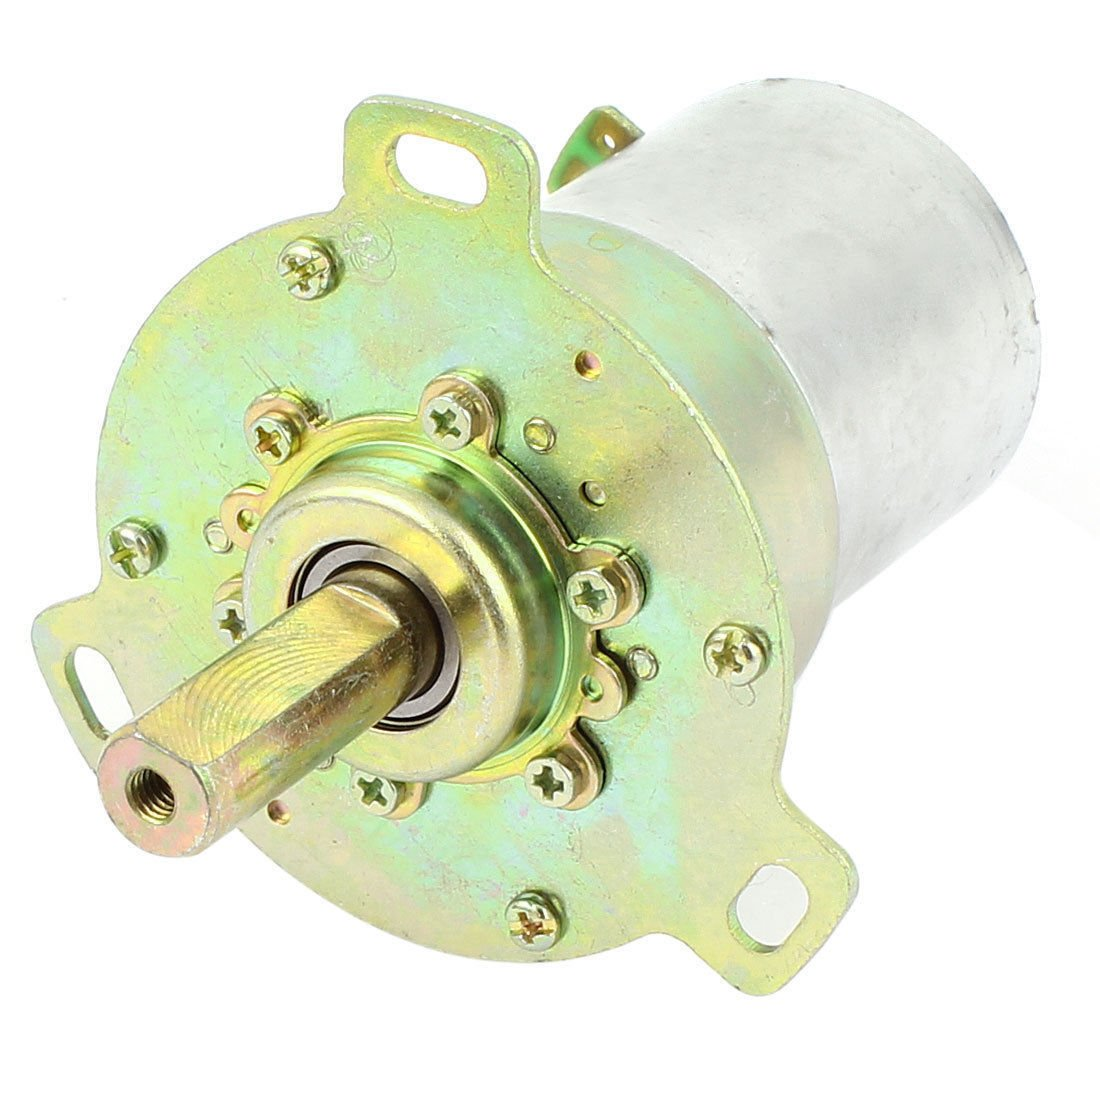 DC 12V 15RPM 10mm Dia Shaft 3 Pole Connector Cylinder Shape GearBox Motor 38ZY13